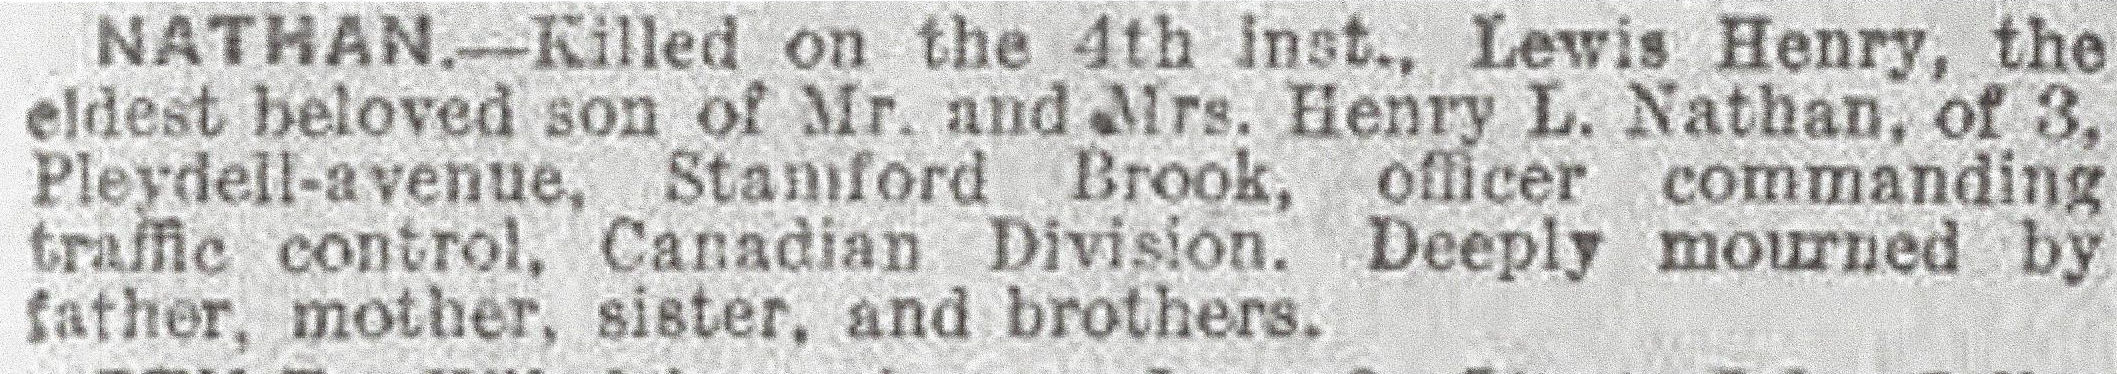 Newspaper Clipping– Newspaper clipping from the Daily Telegraph of June 11, 1917. Image taken from web address of http://www.telegraph.co.uk/news/ww1-archive/12214641/Daily-Telegraph-June-11-1917.html